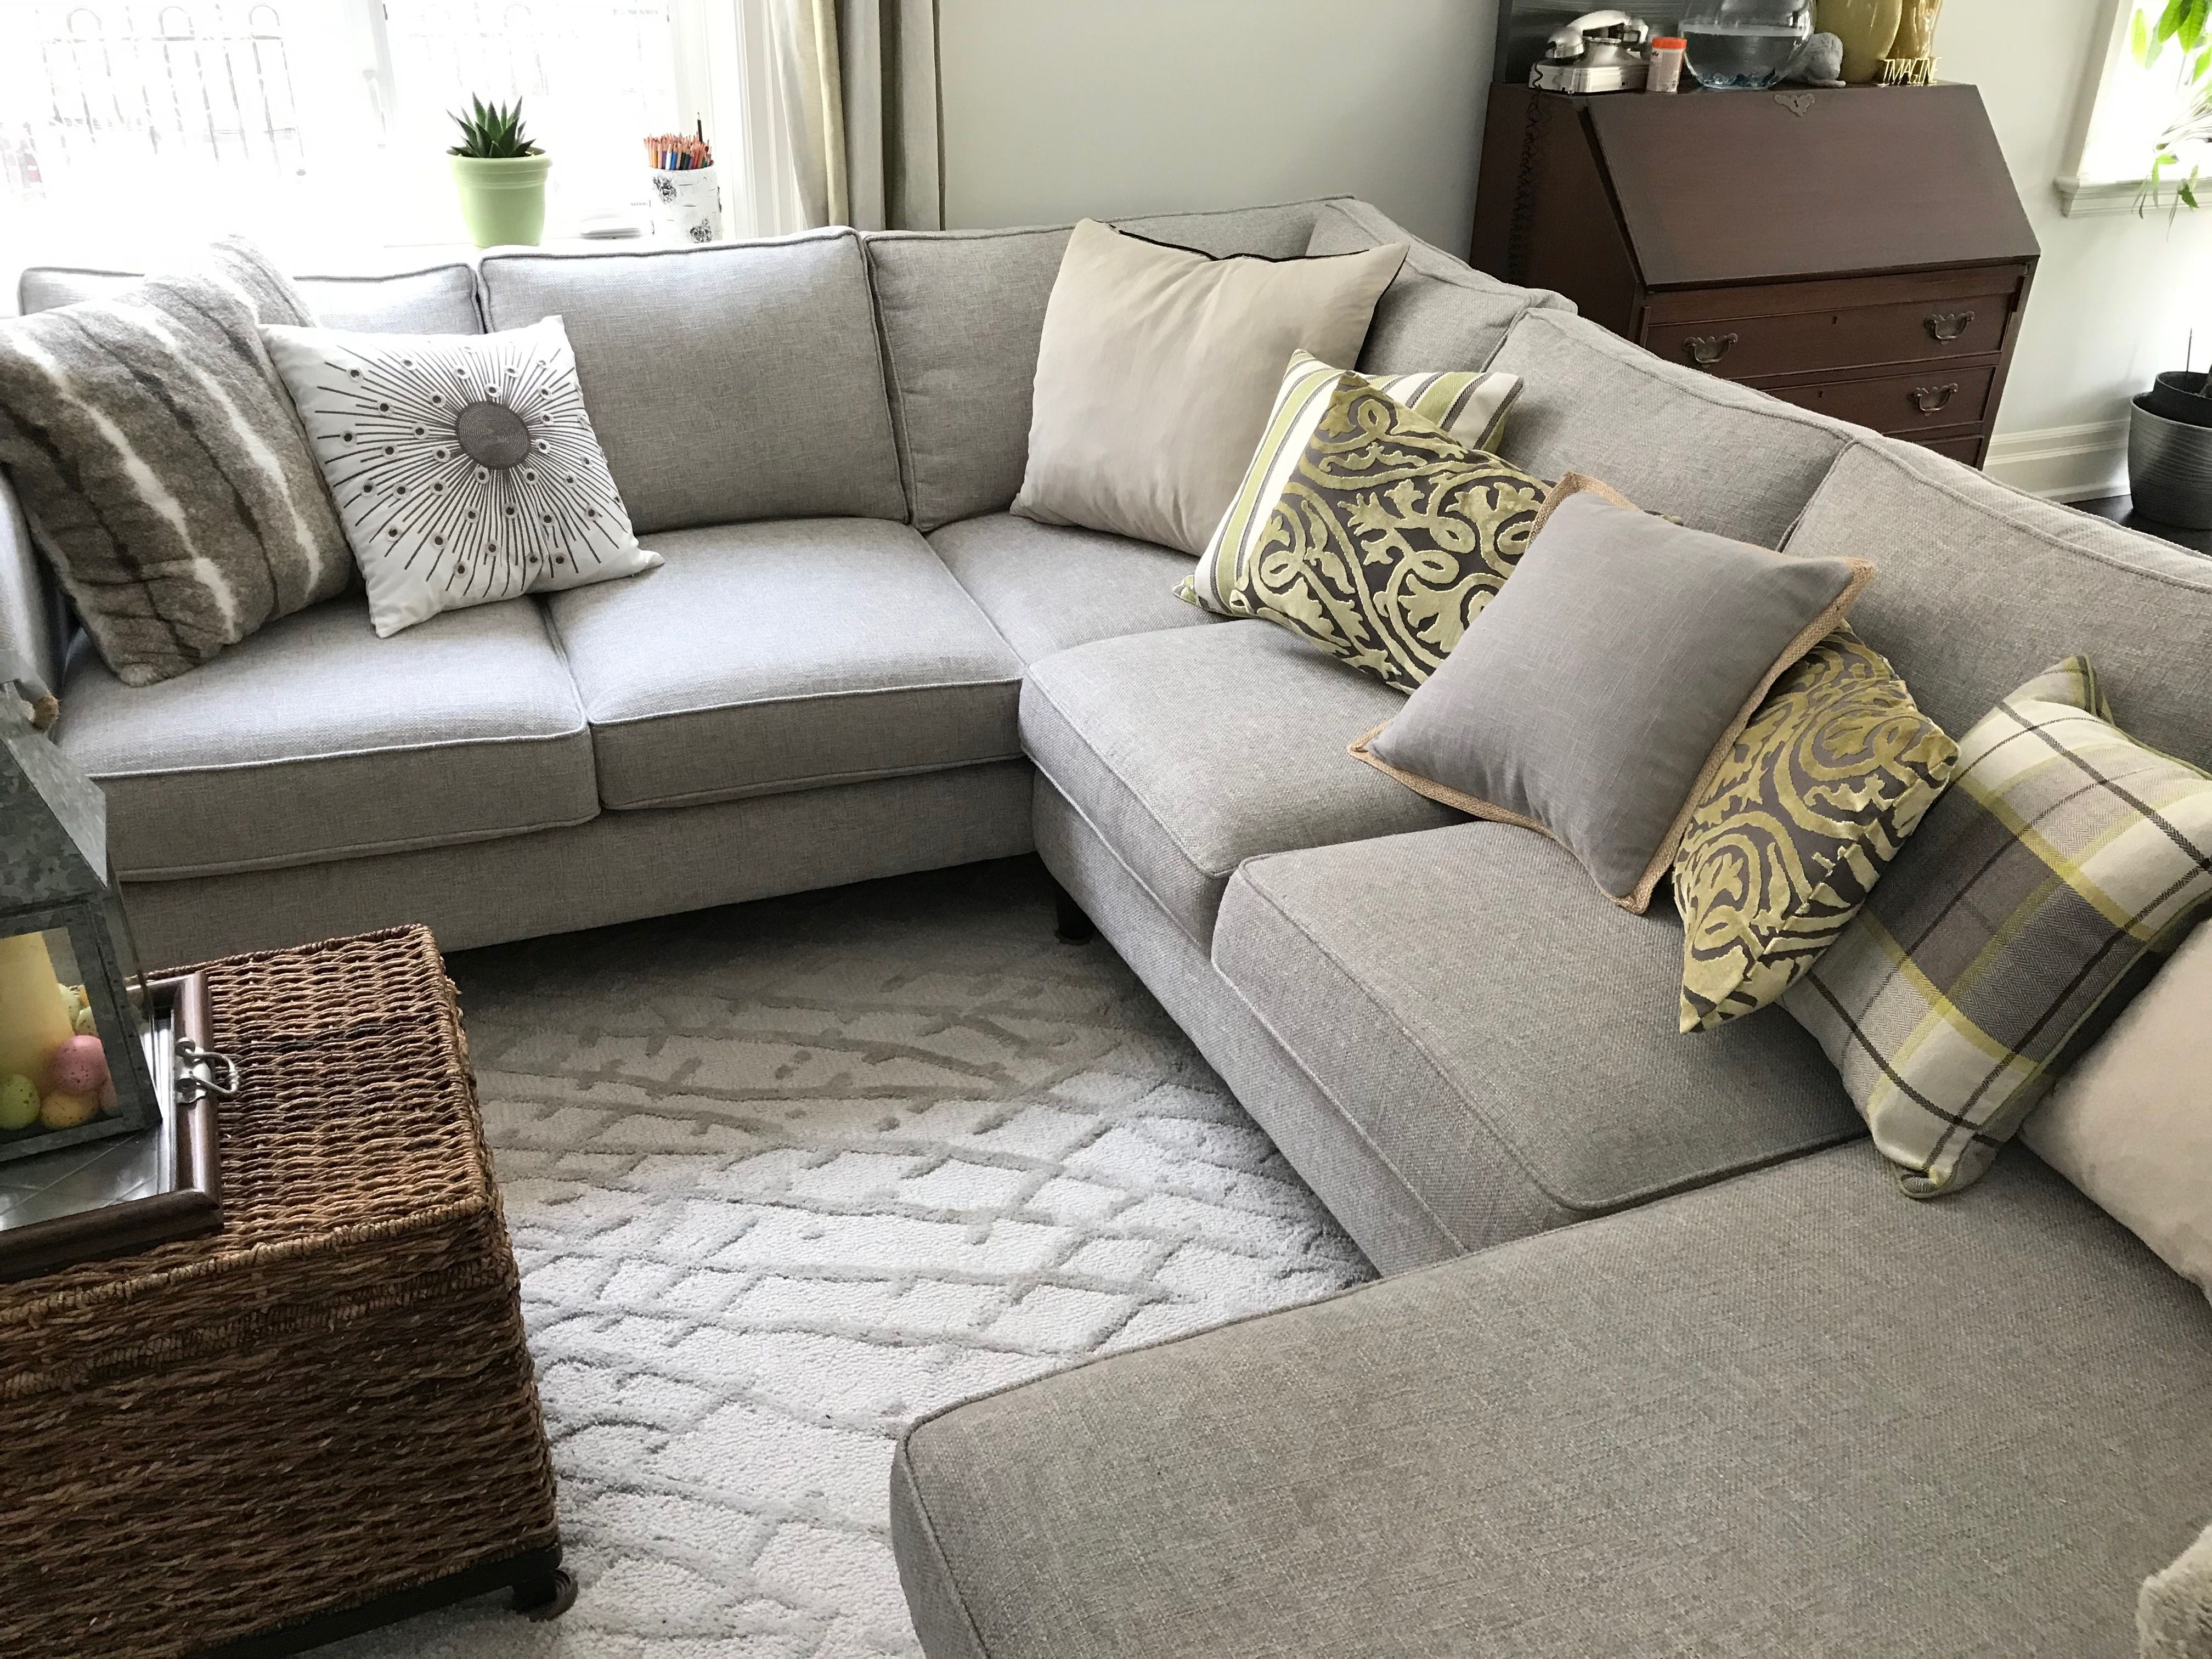 Grey Sectional Sofa With Light Green Accents In Family Room Grey